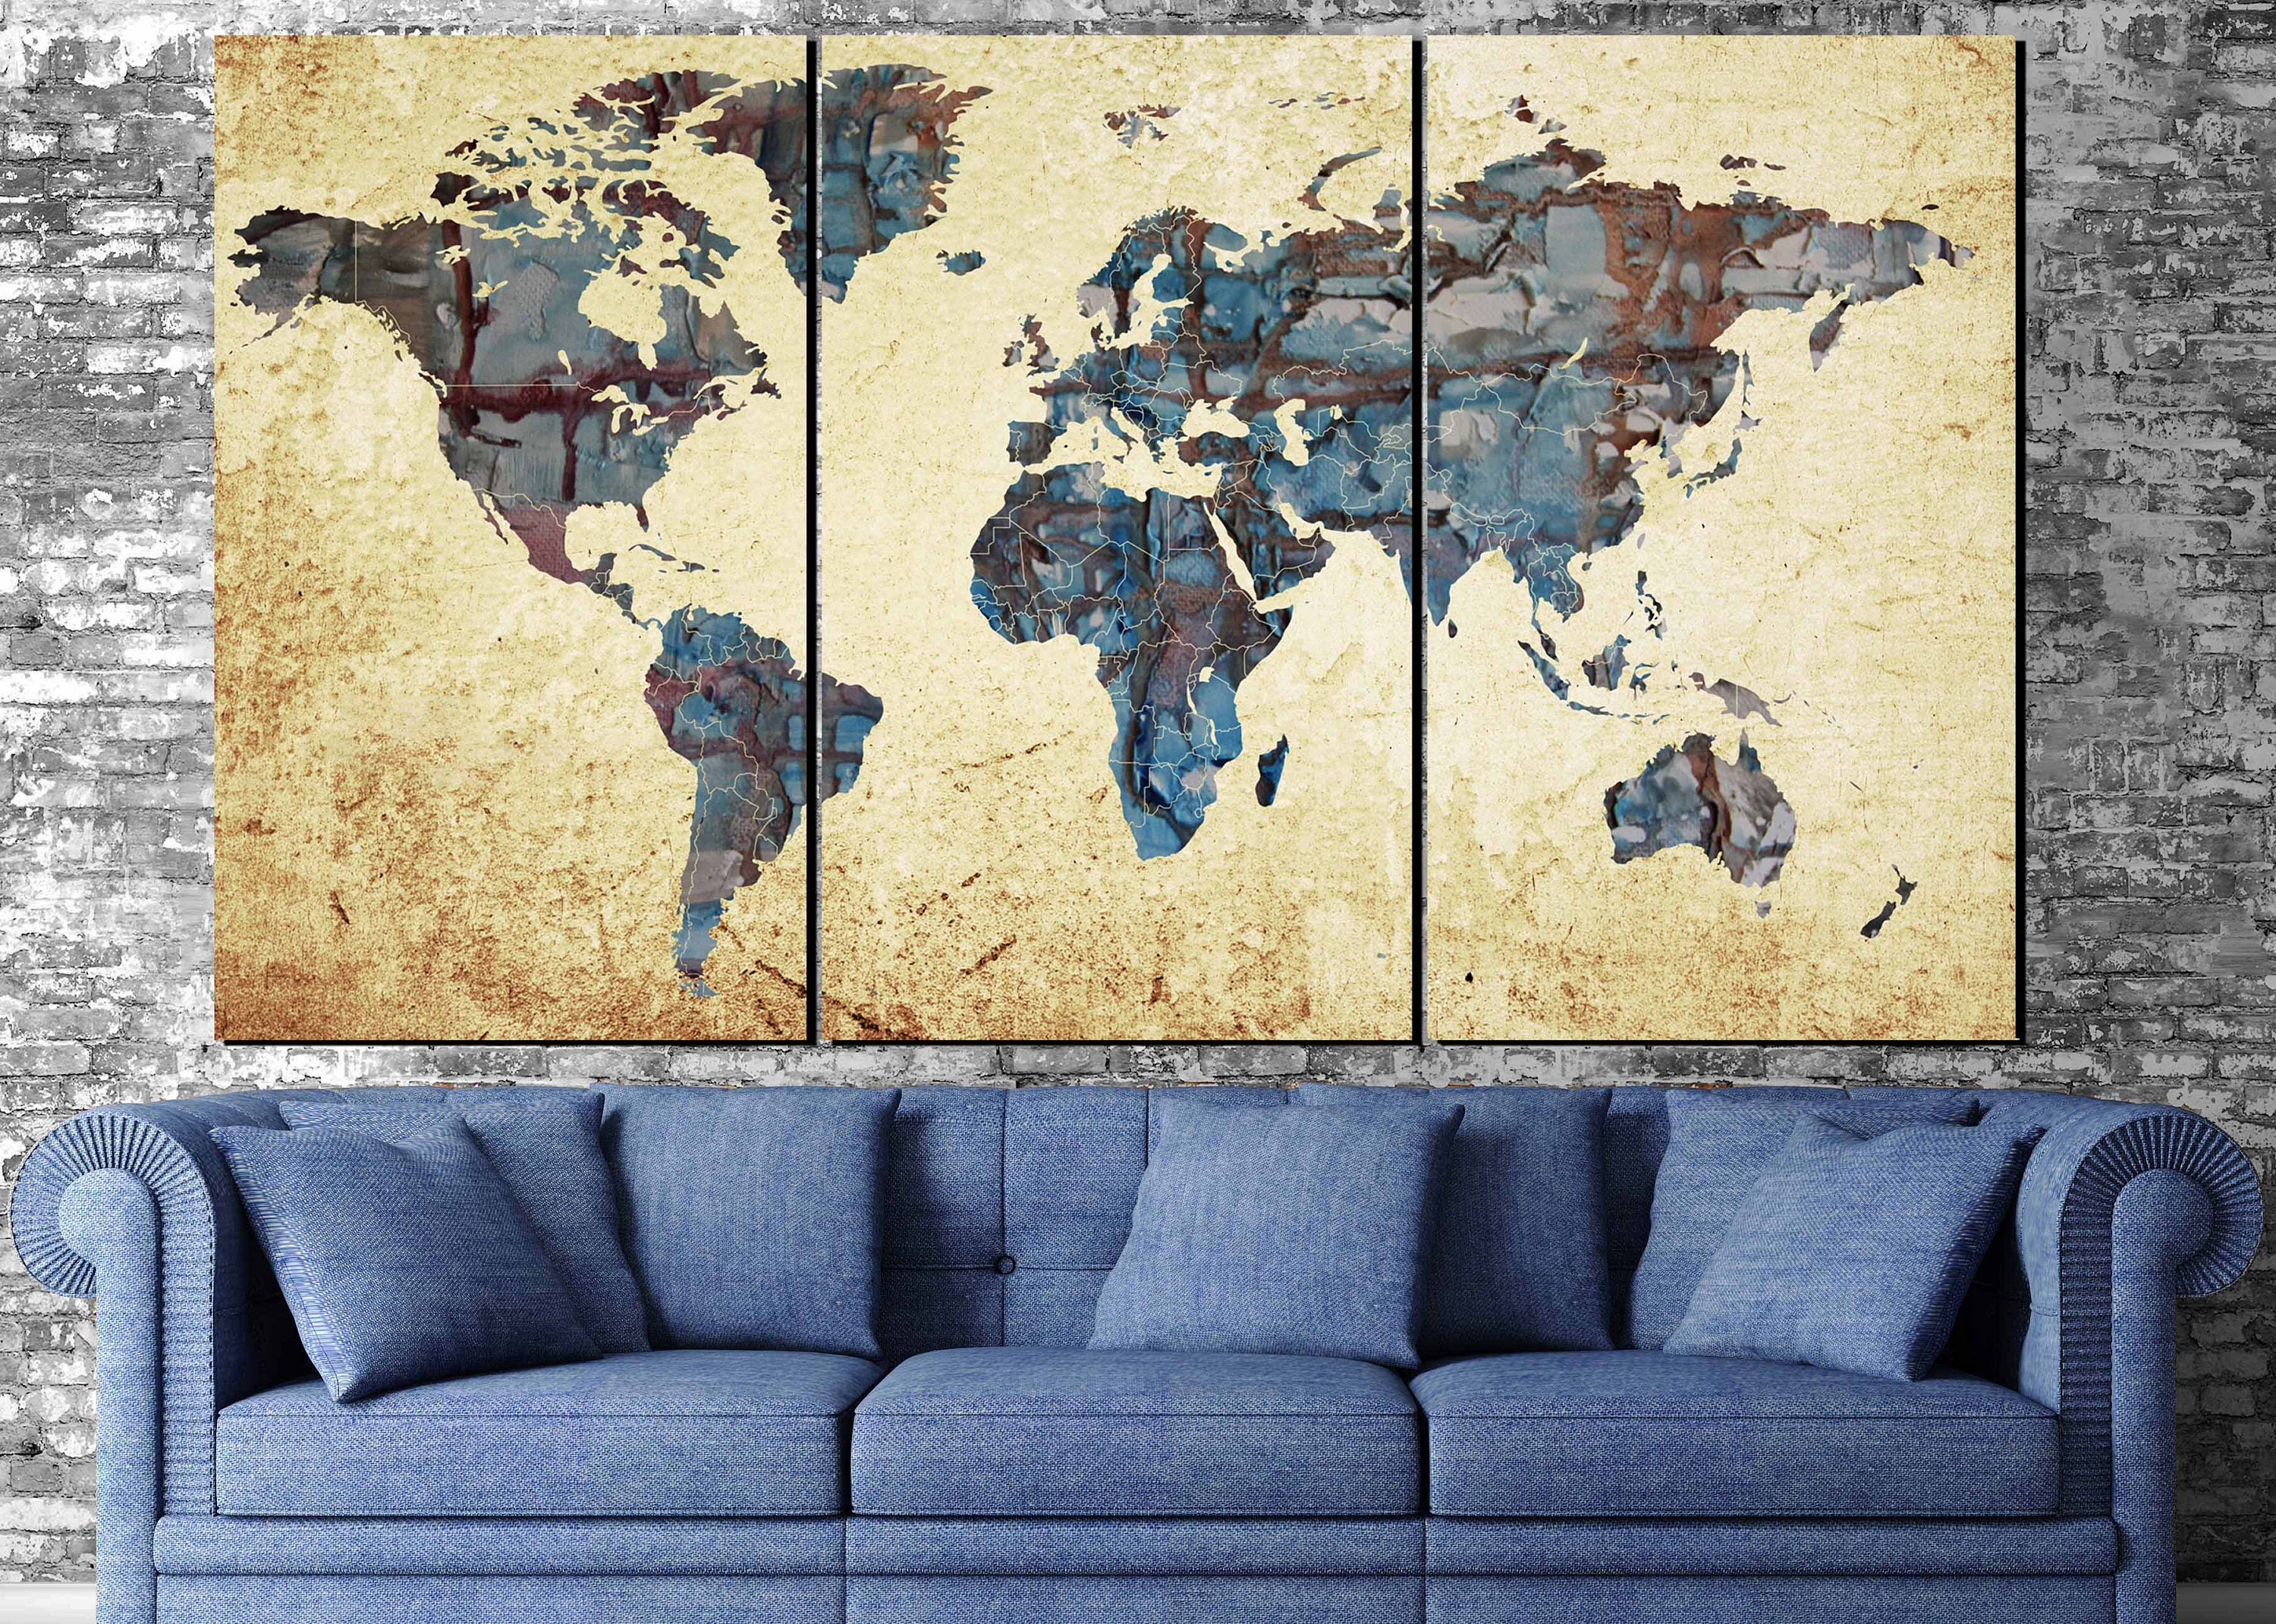 Large world mapworld map abstract map wall art world map painting large world mapworld map abstract map wall art world map paintingworld map printmap postermap canvaspush pinhand madedecorative art gumiabroncs Image collections